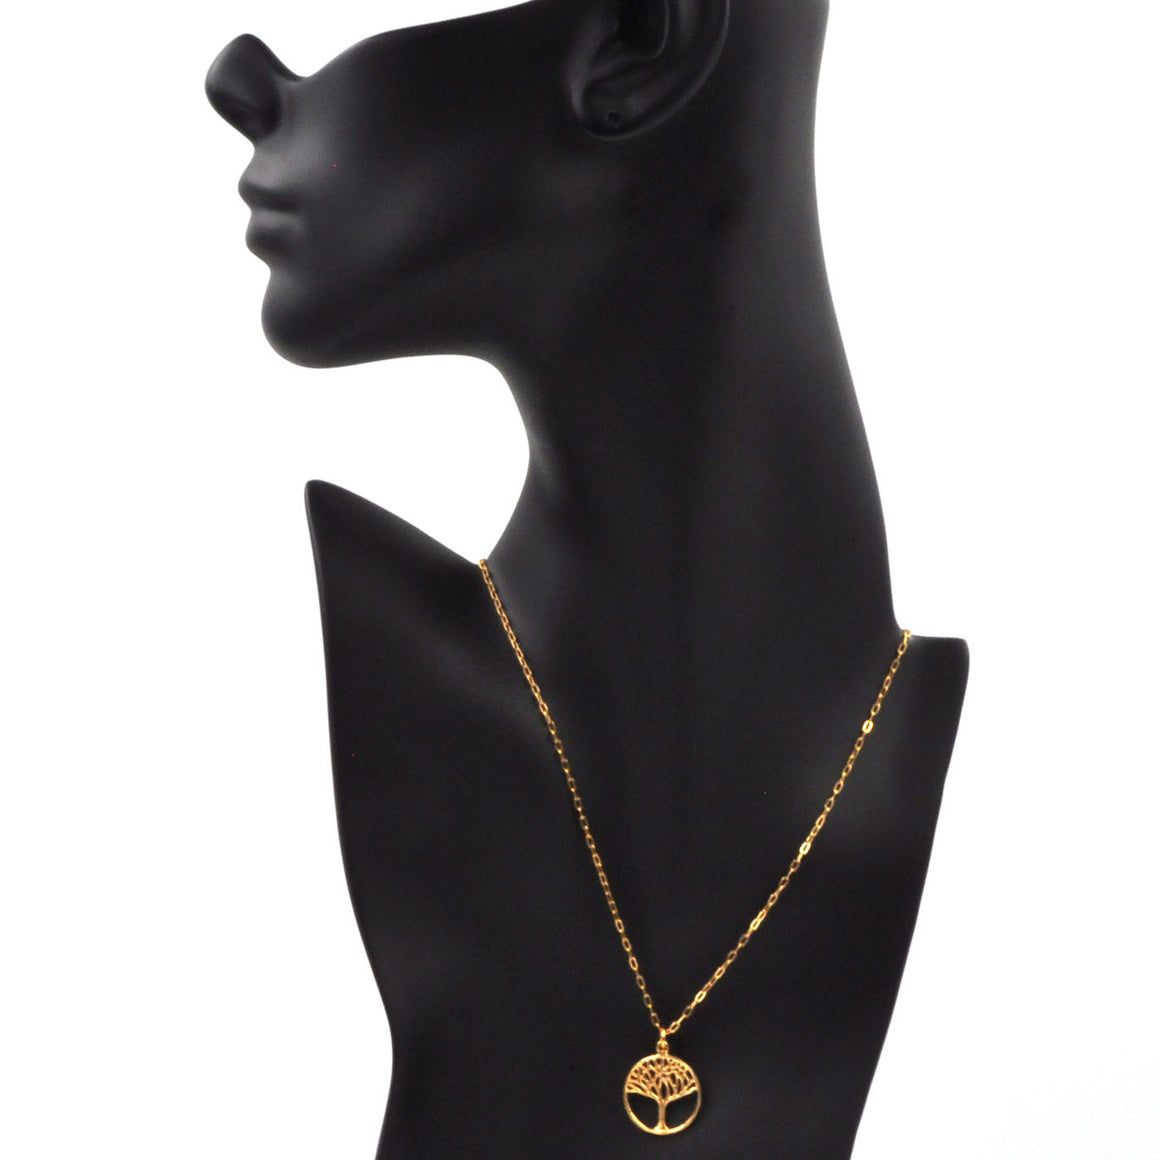 Tree of Life Necklace (Small) - 24K Gold Plated